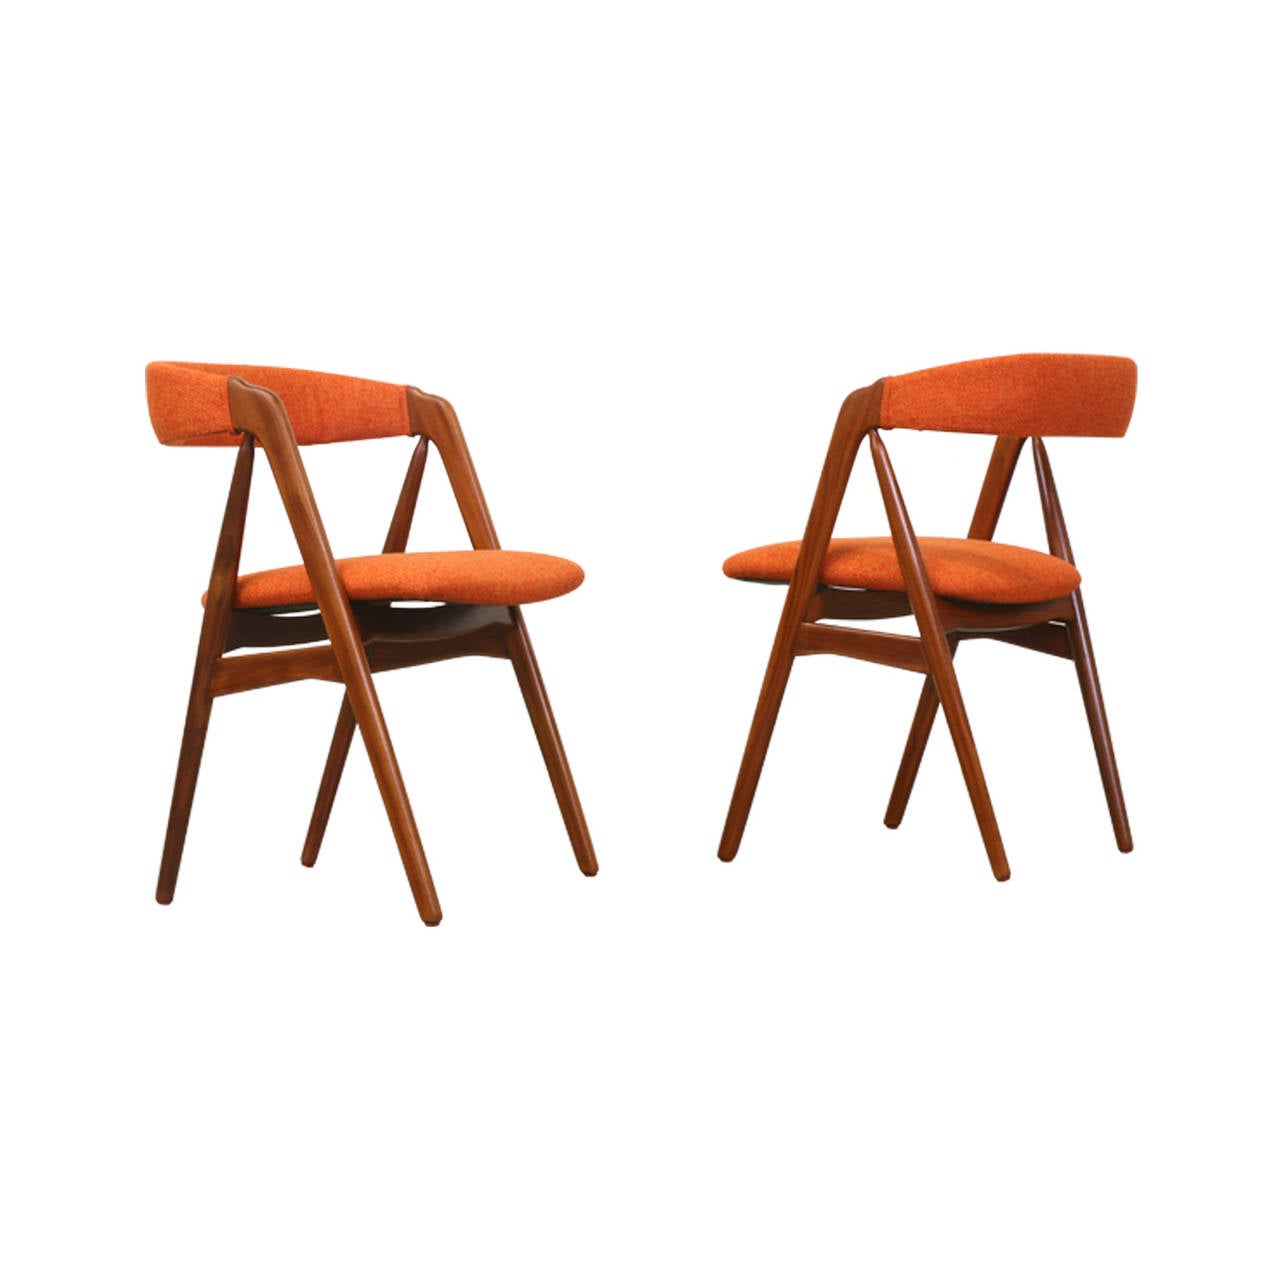 Kai Kristiansen A Frame Dining Chairs At 1stdibs